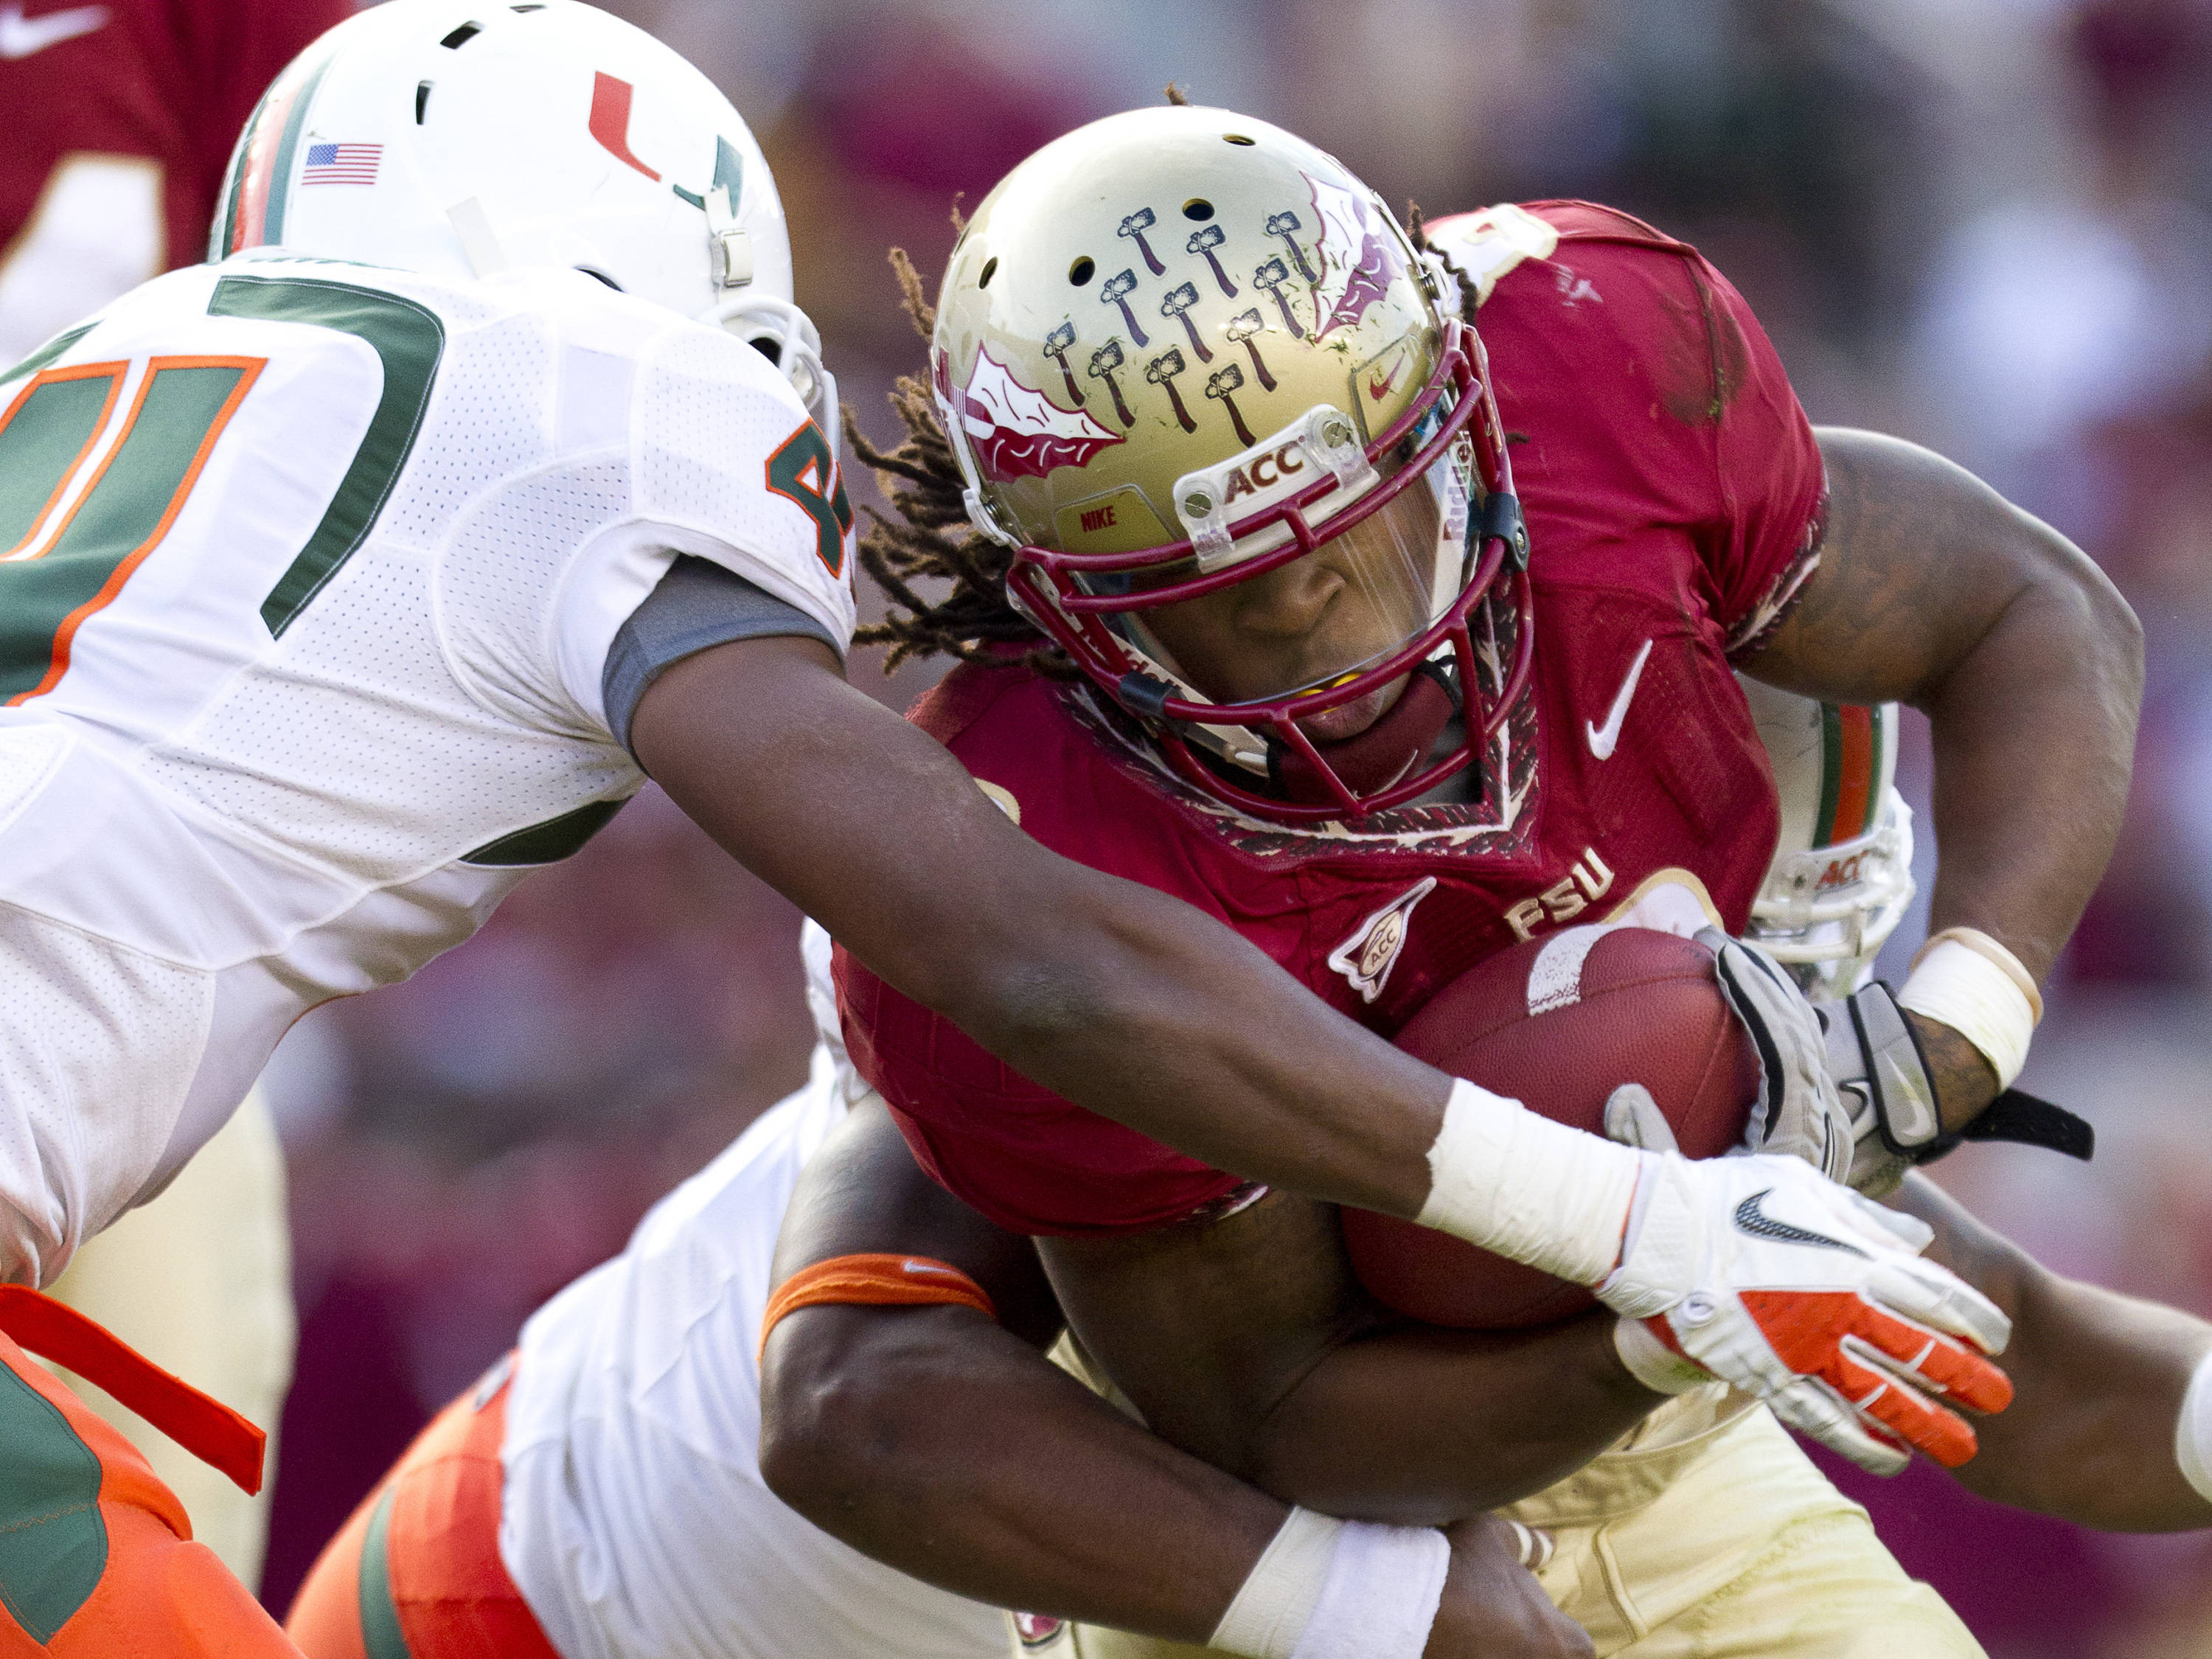 Devonta Freeman (8) prevents a Miami player from stripping the ball during the football game against Miami on November 12, 2011.